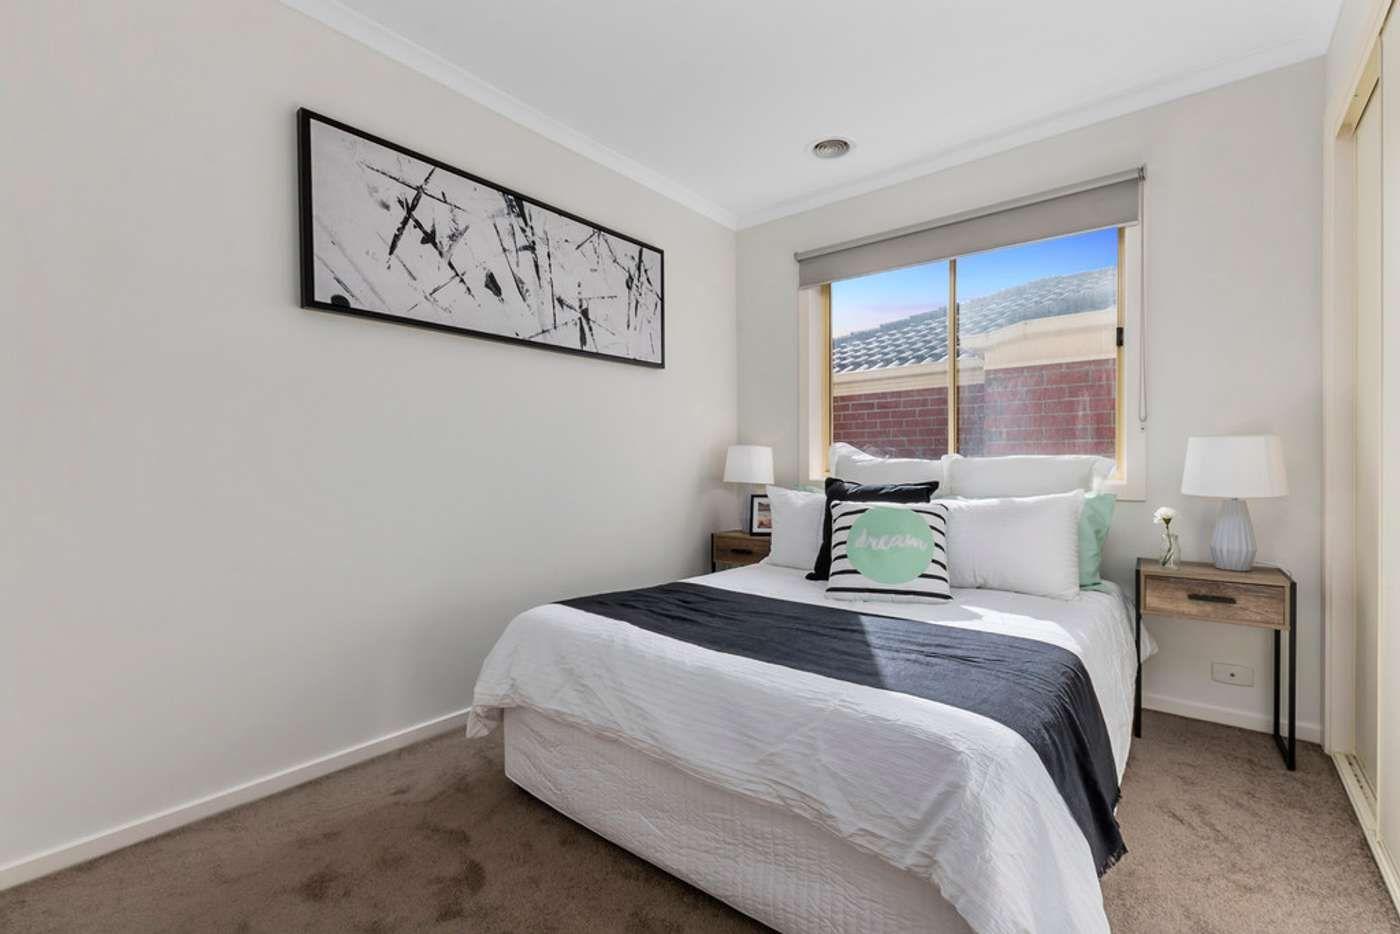 Seventh view of Homely house listing, 8 Jolley Rise, Harkness VIC 3337